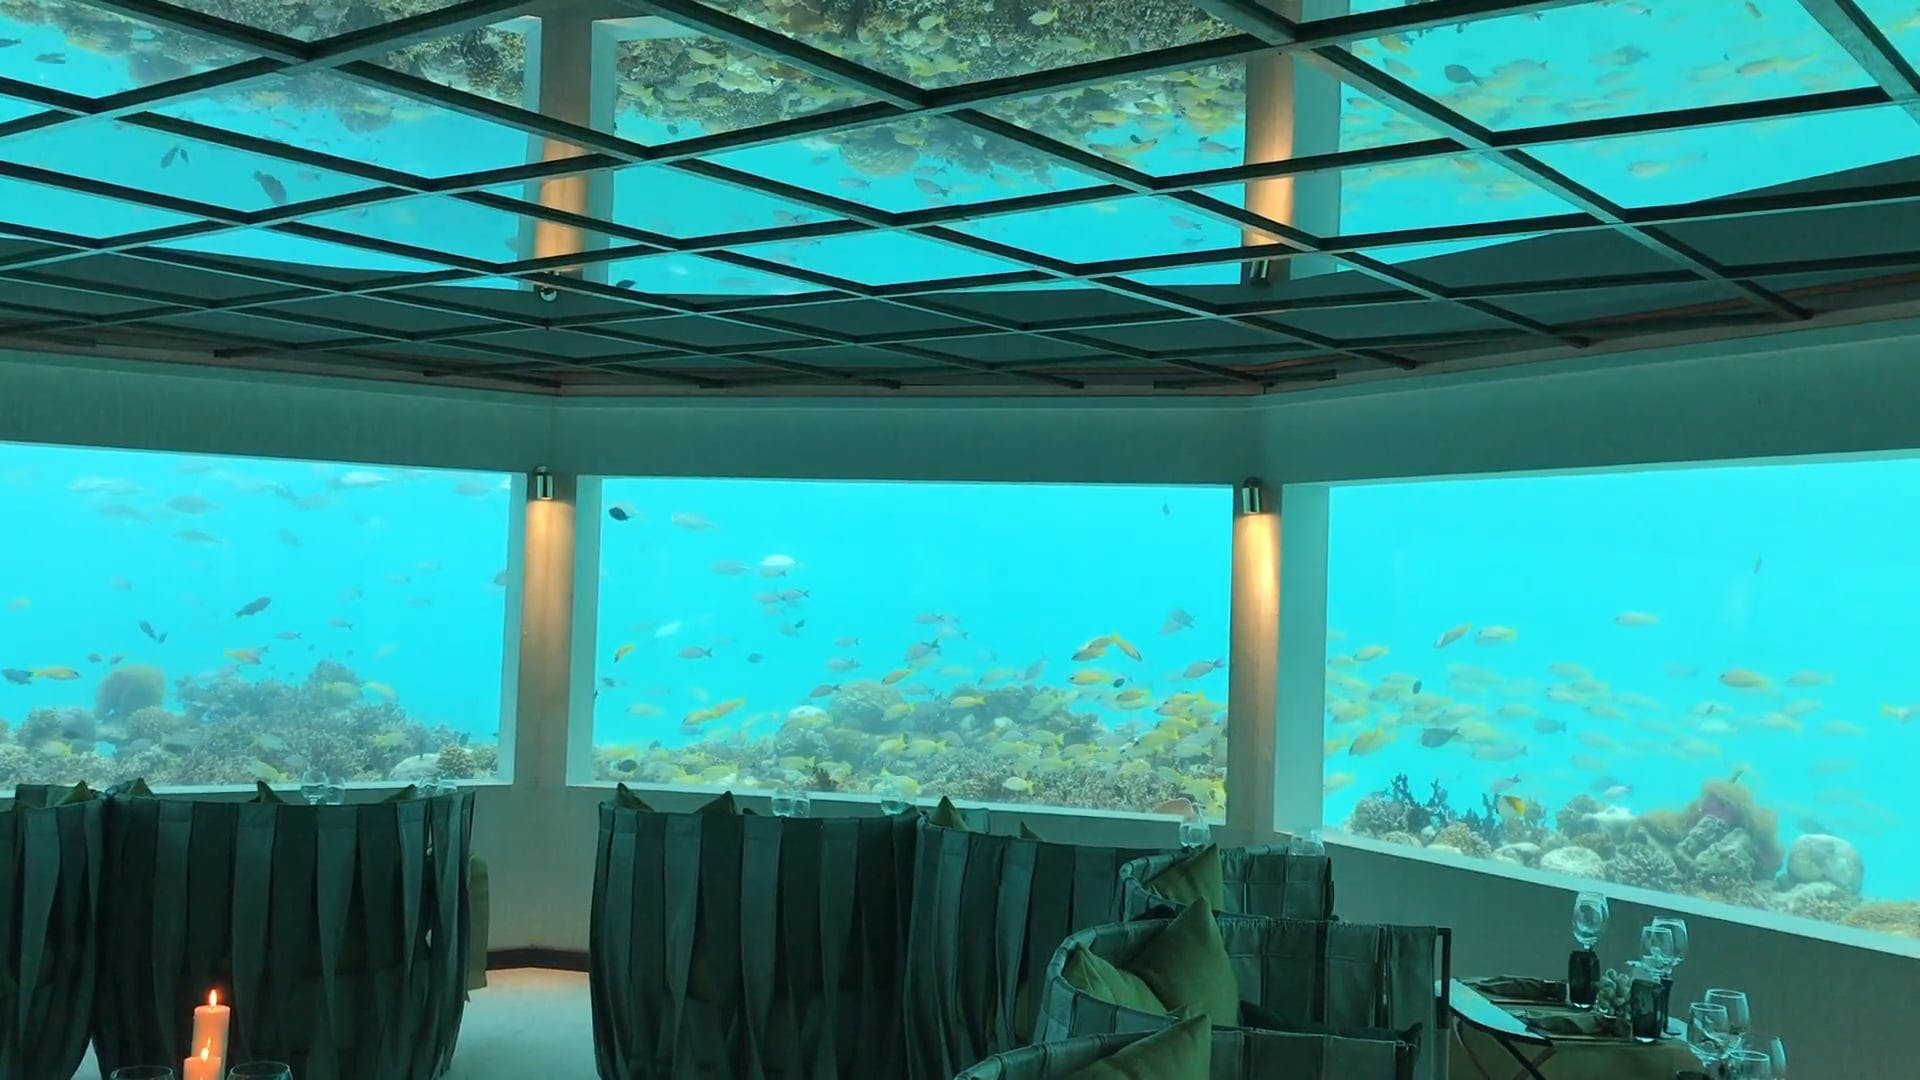 A Beautiful Aquarium With Various Fishes